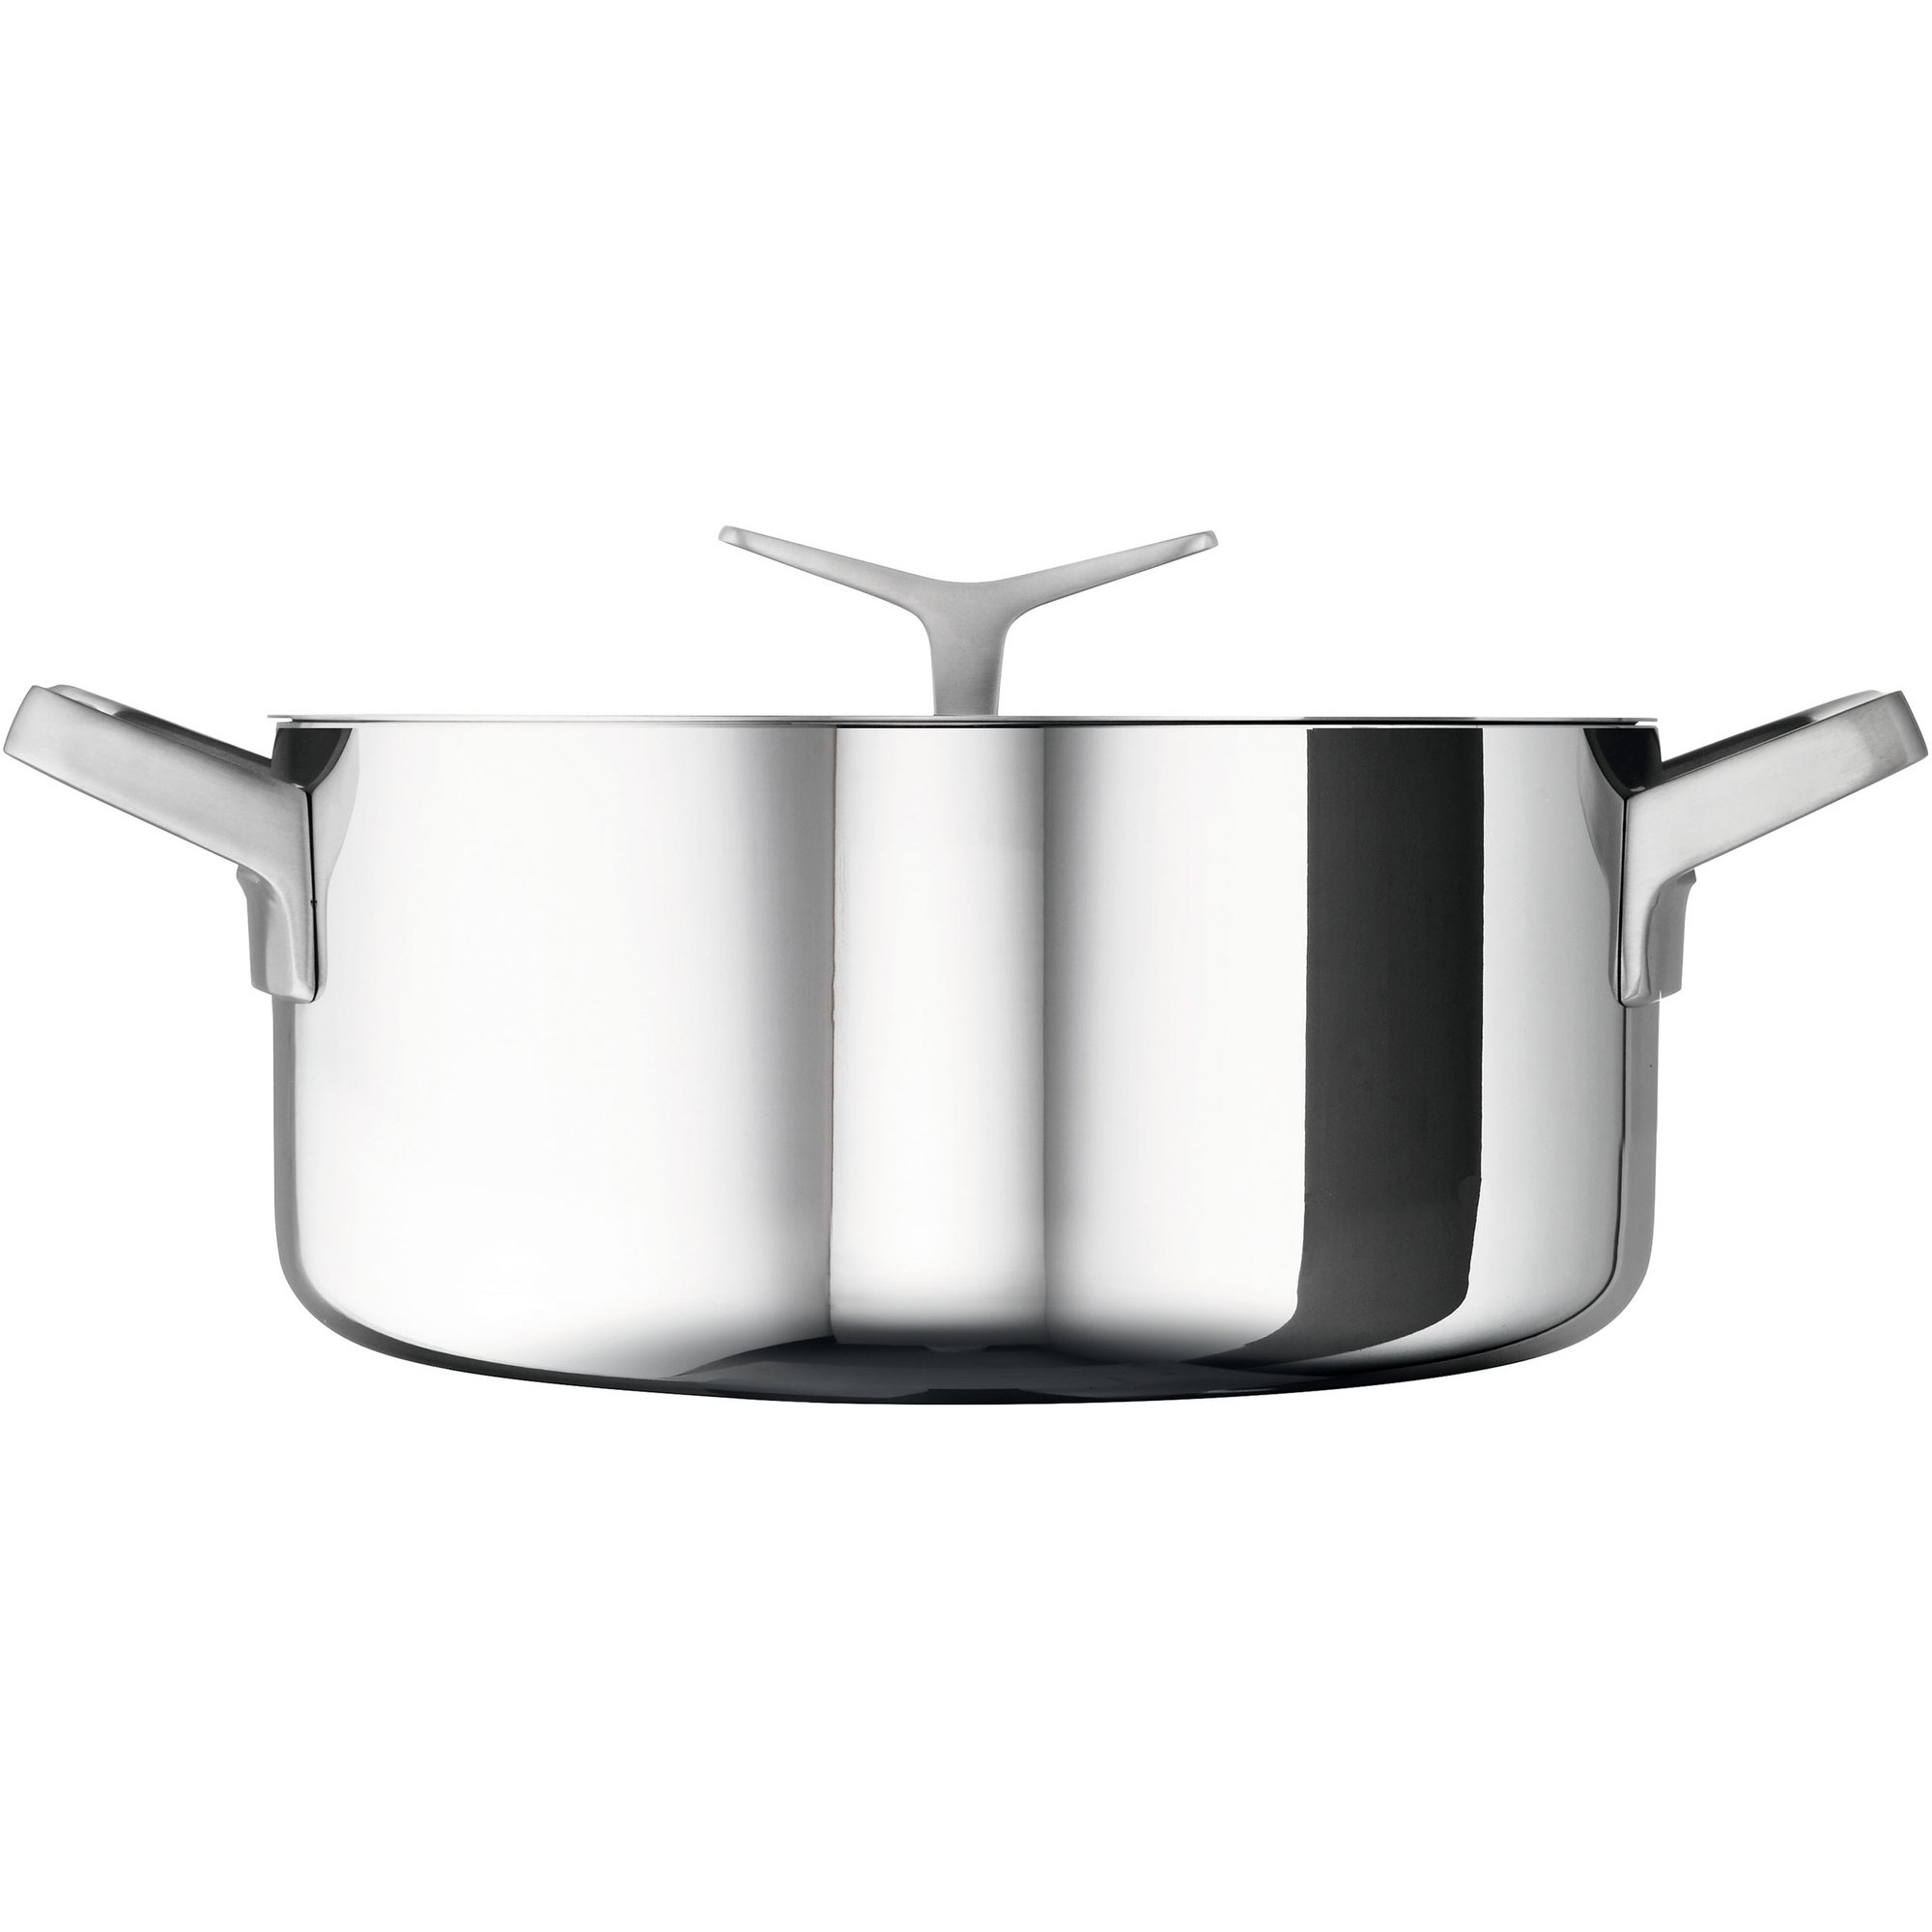 Electrolux Infinite Chef Collection gryta 22 cm. / 3L